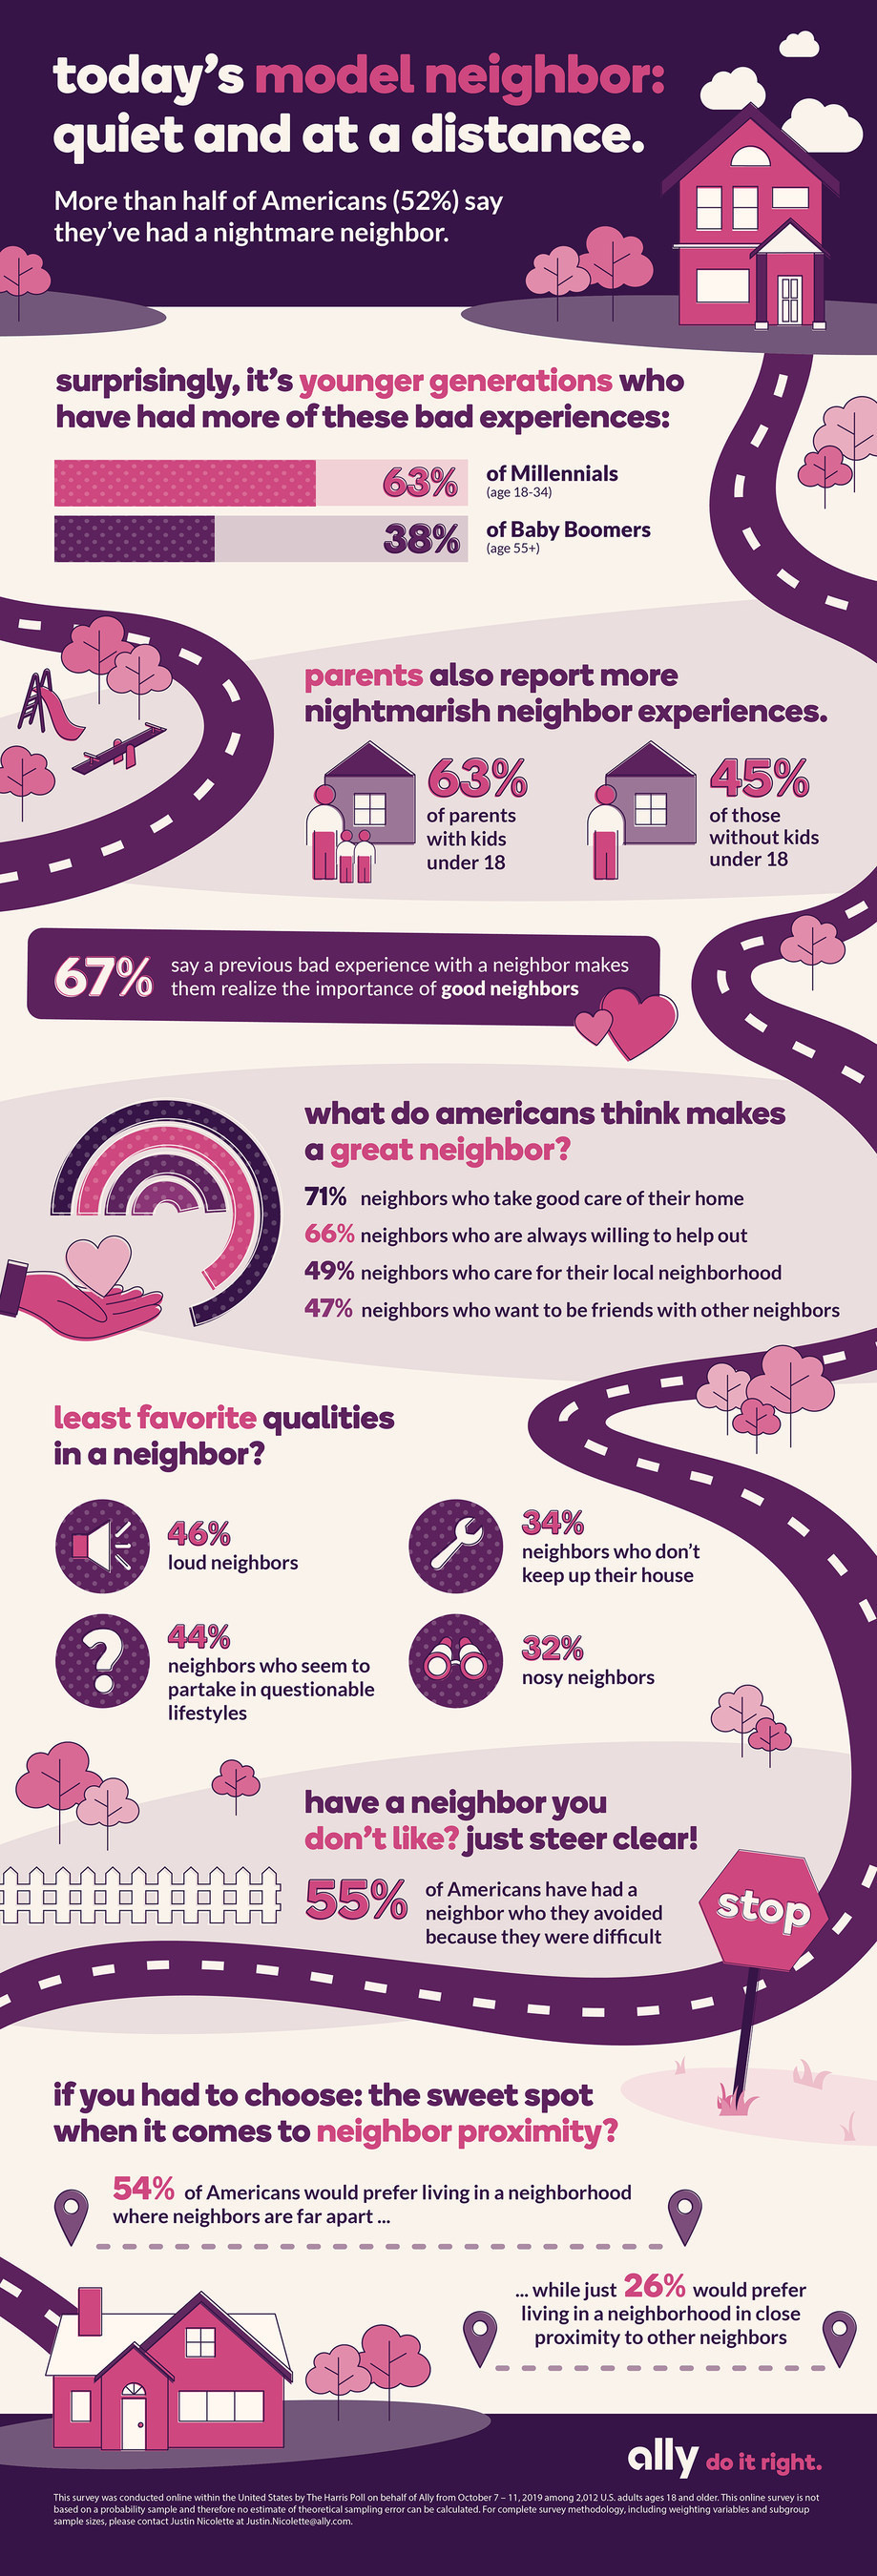 bad neighbors infographic. Visit source link at the end of this article for more information.